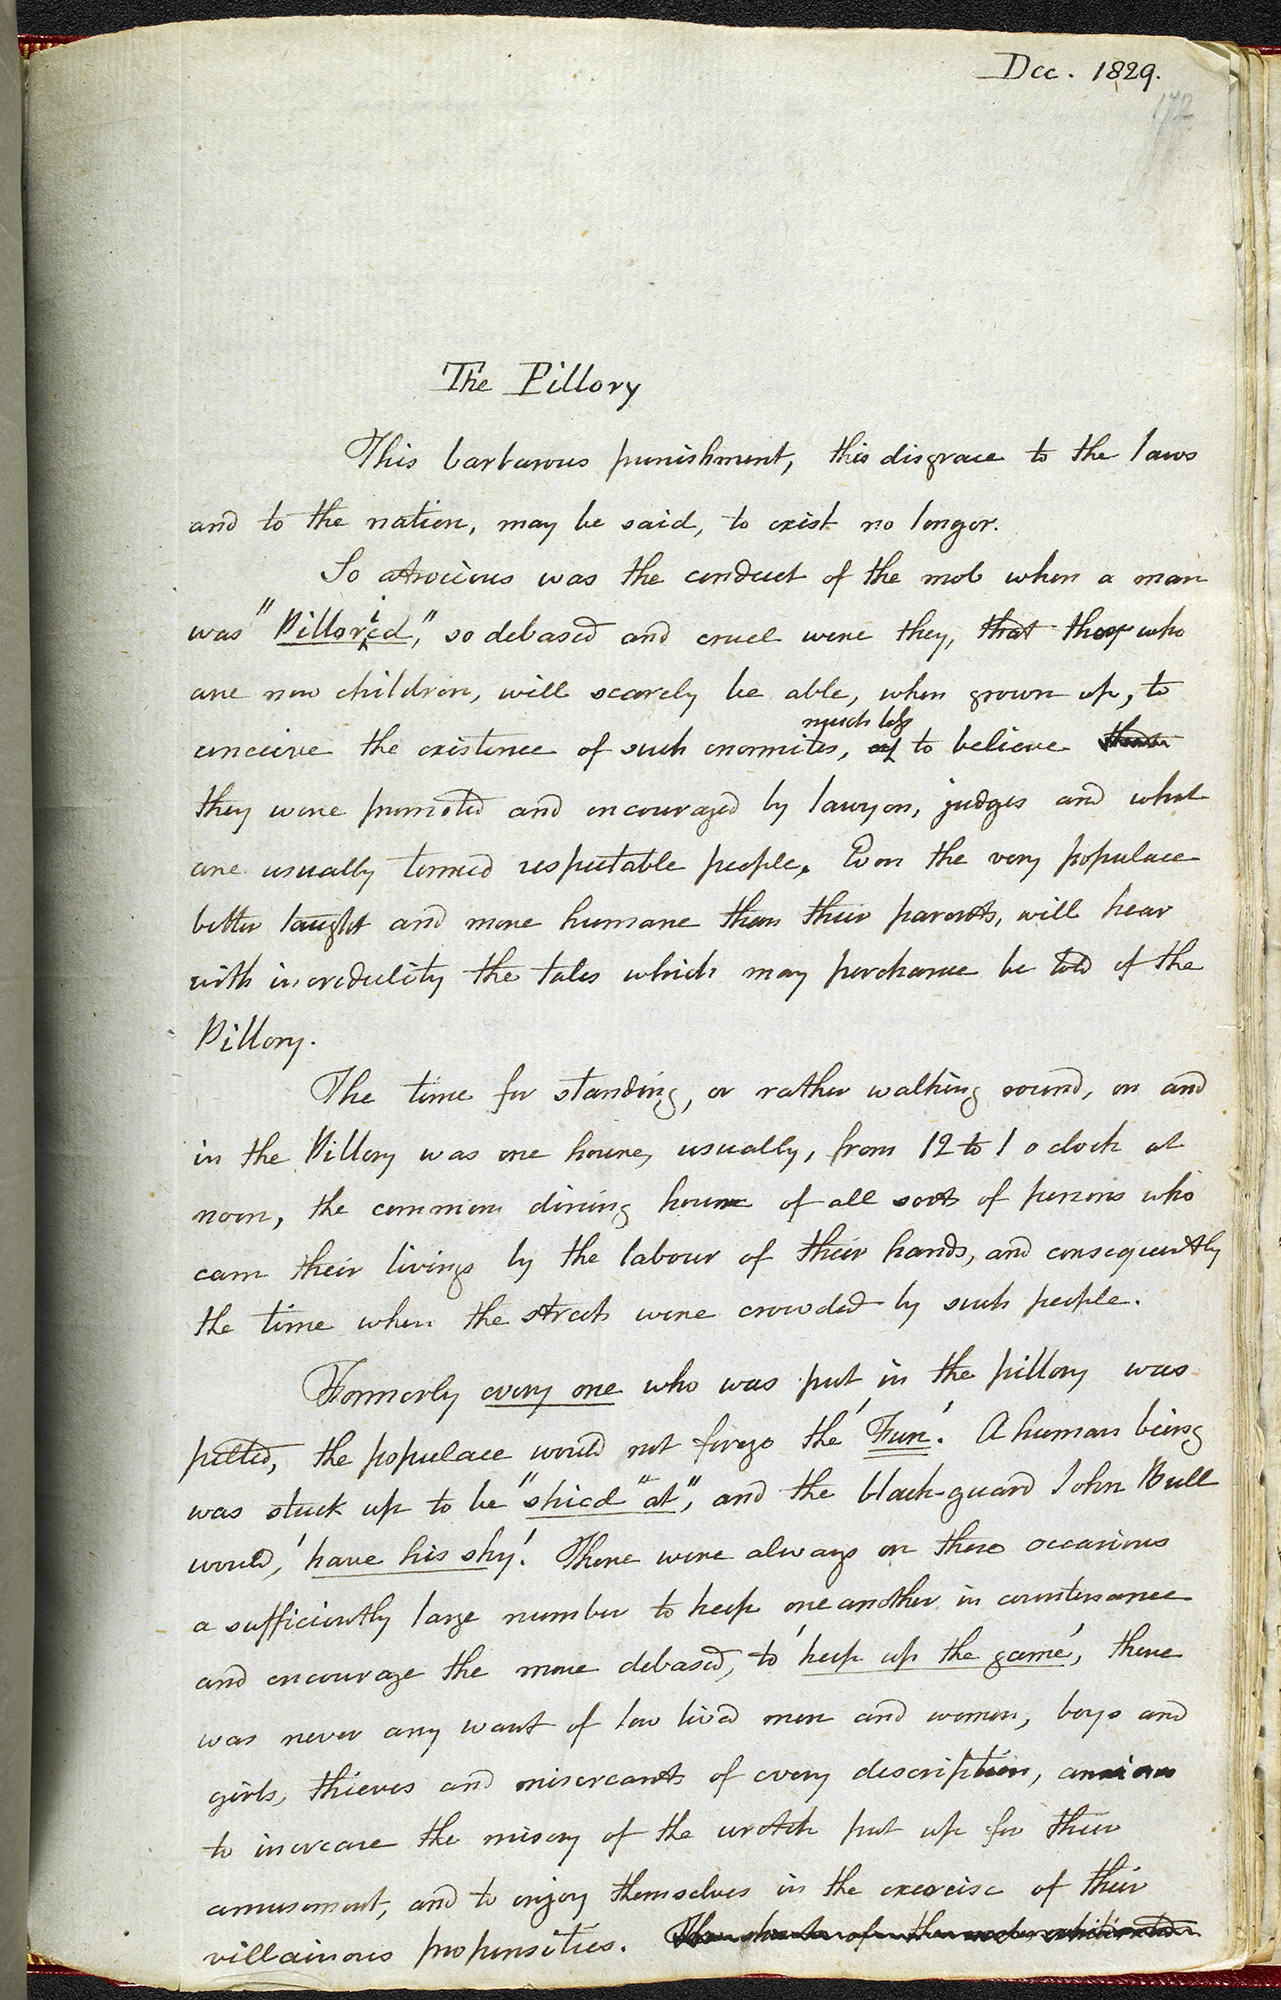 Extract from the diary of Francis Place describing the pillory, 1829